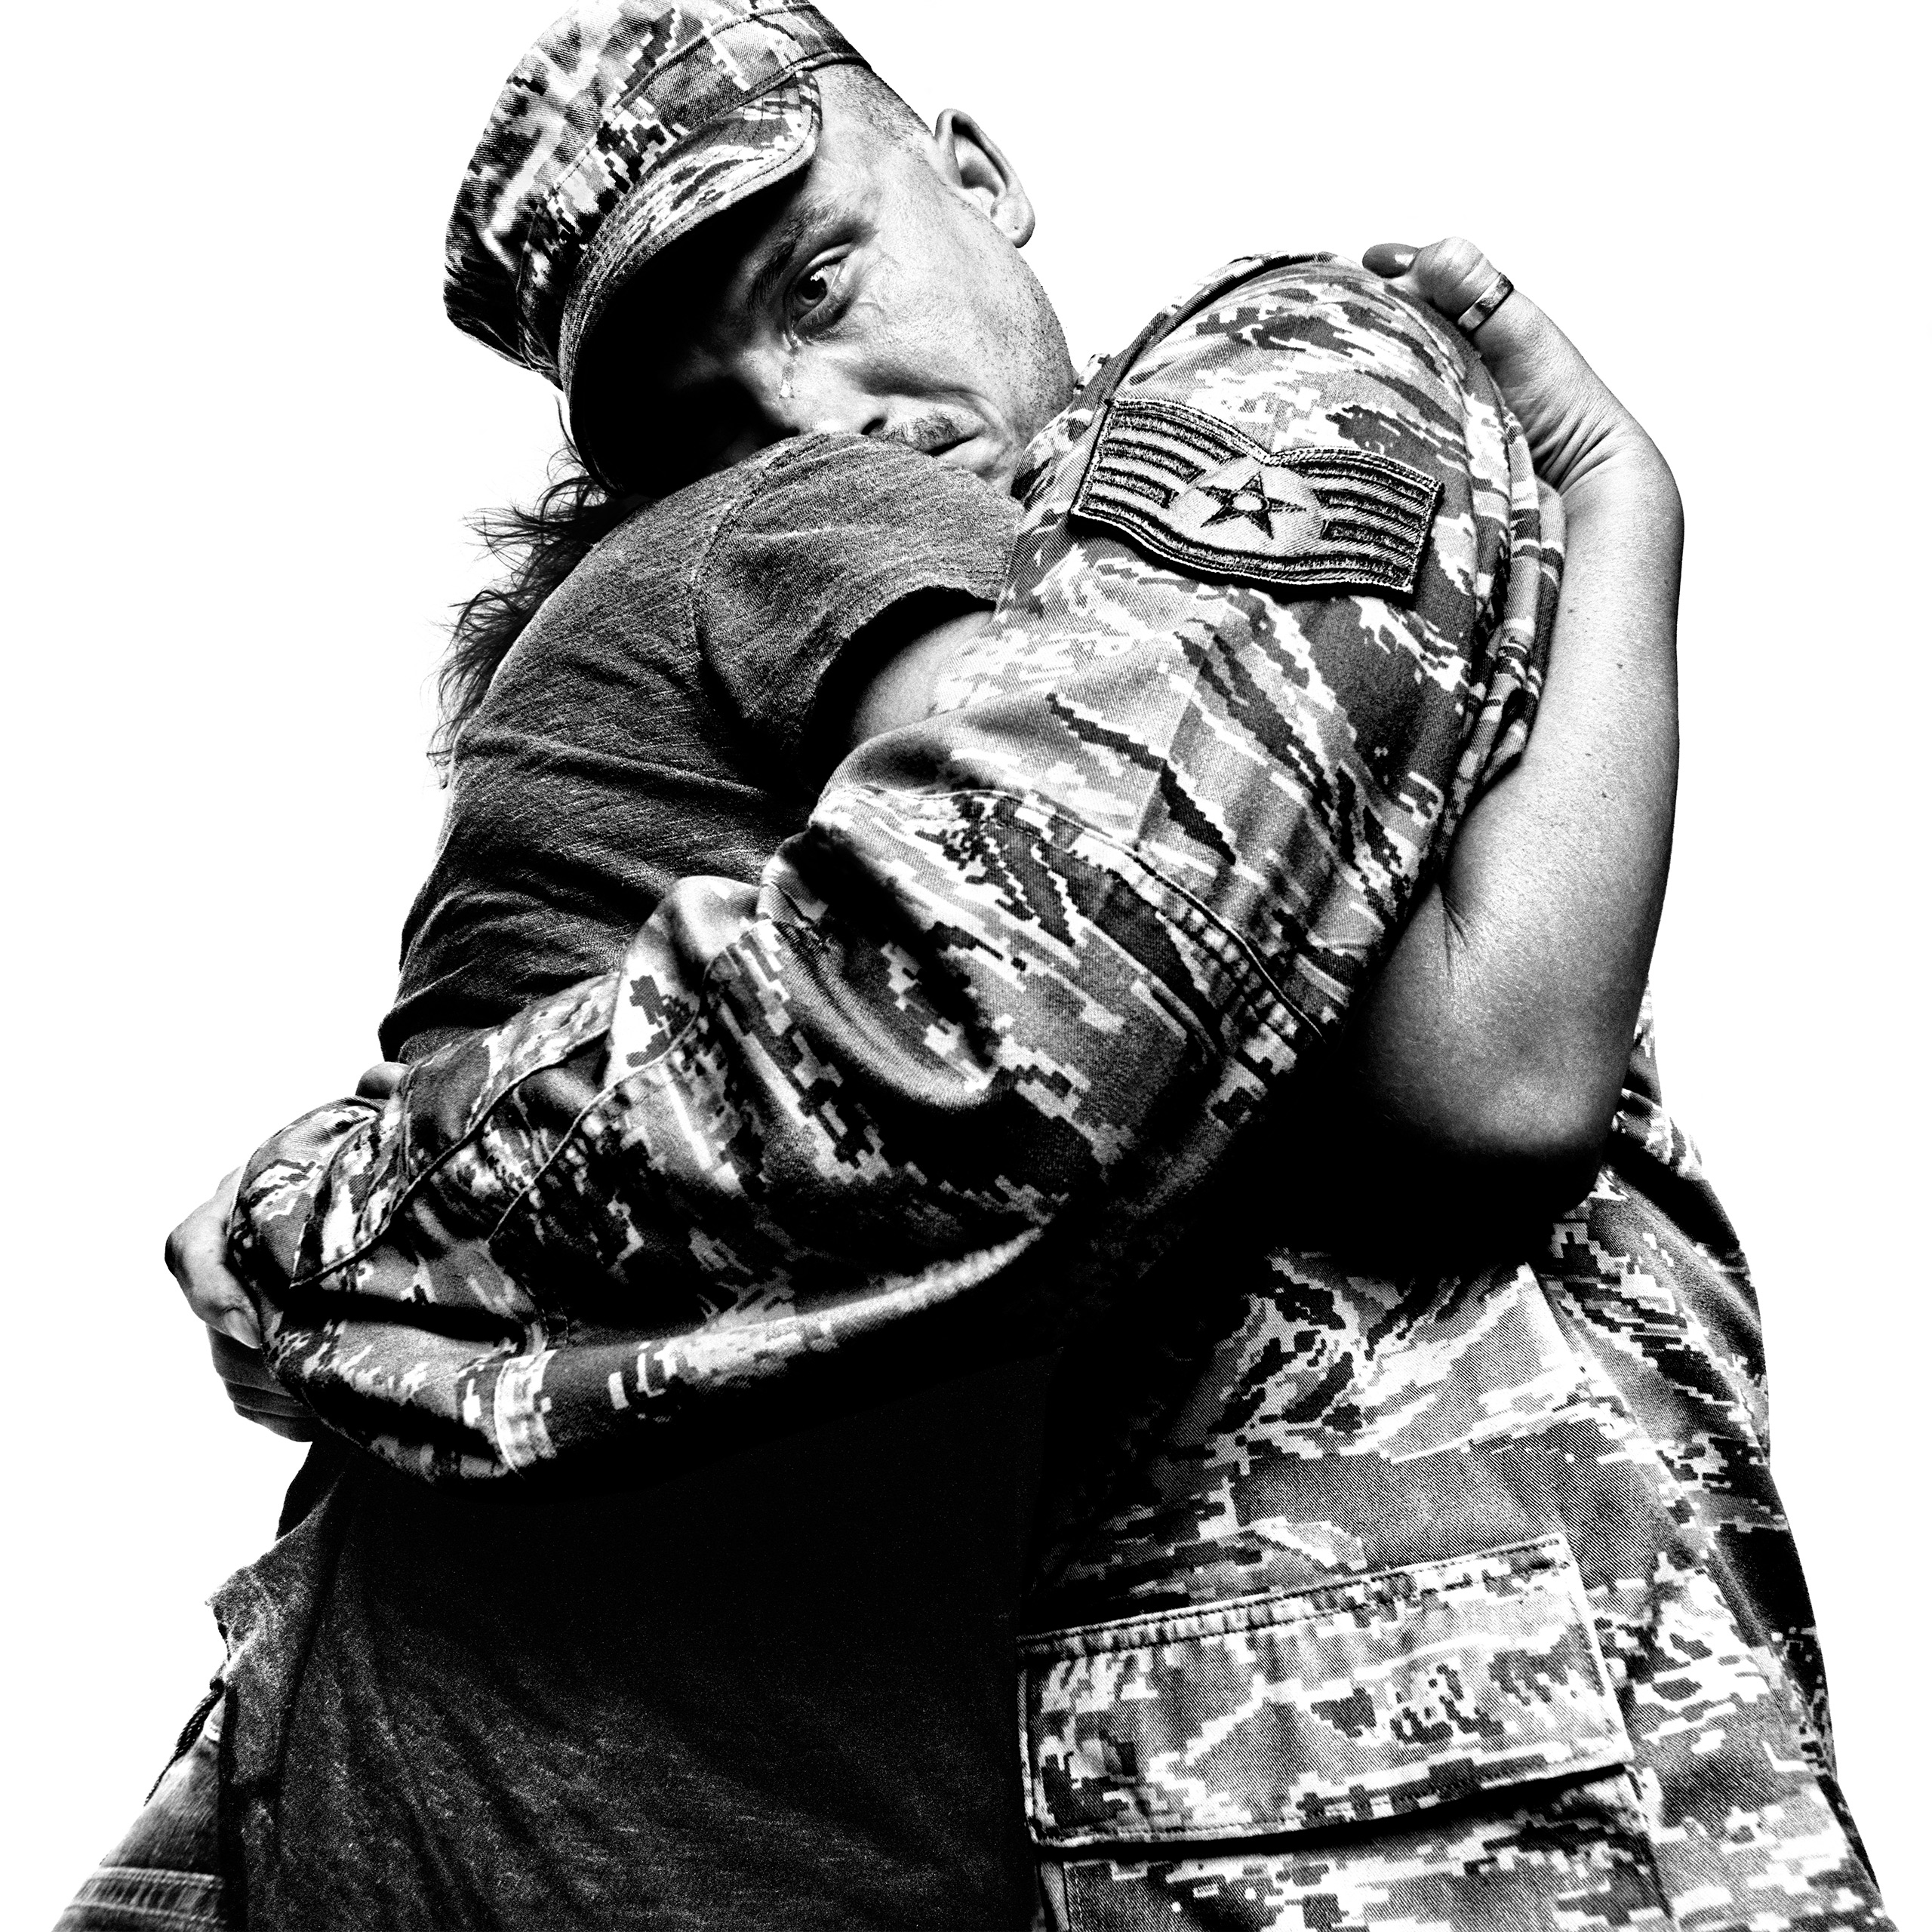 Staff sergeant with loved one. McGuire Air Force Base, 2008.